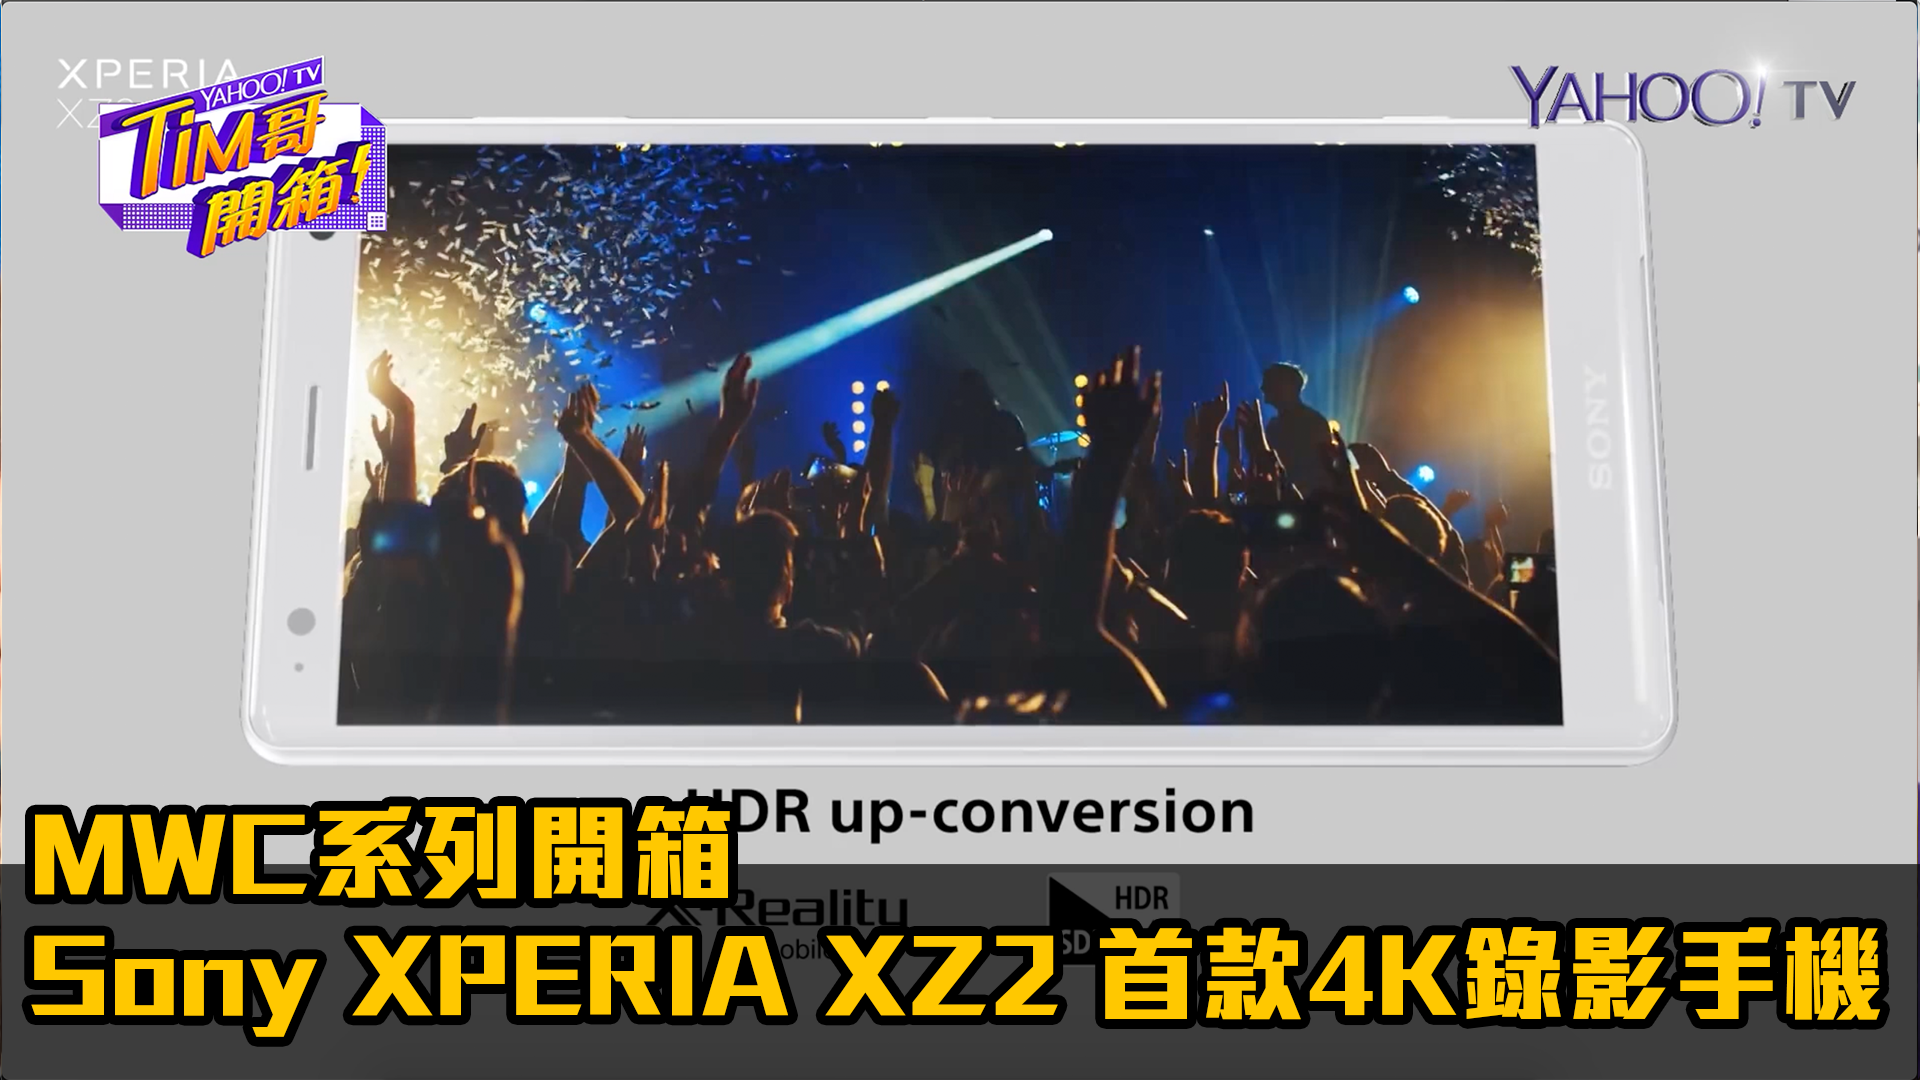 【MWC直擊開箱】Sony XPERIA XZ2 首款4K HDR錄影手機